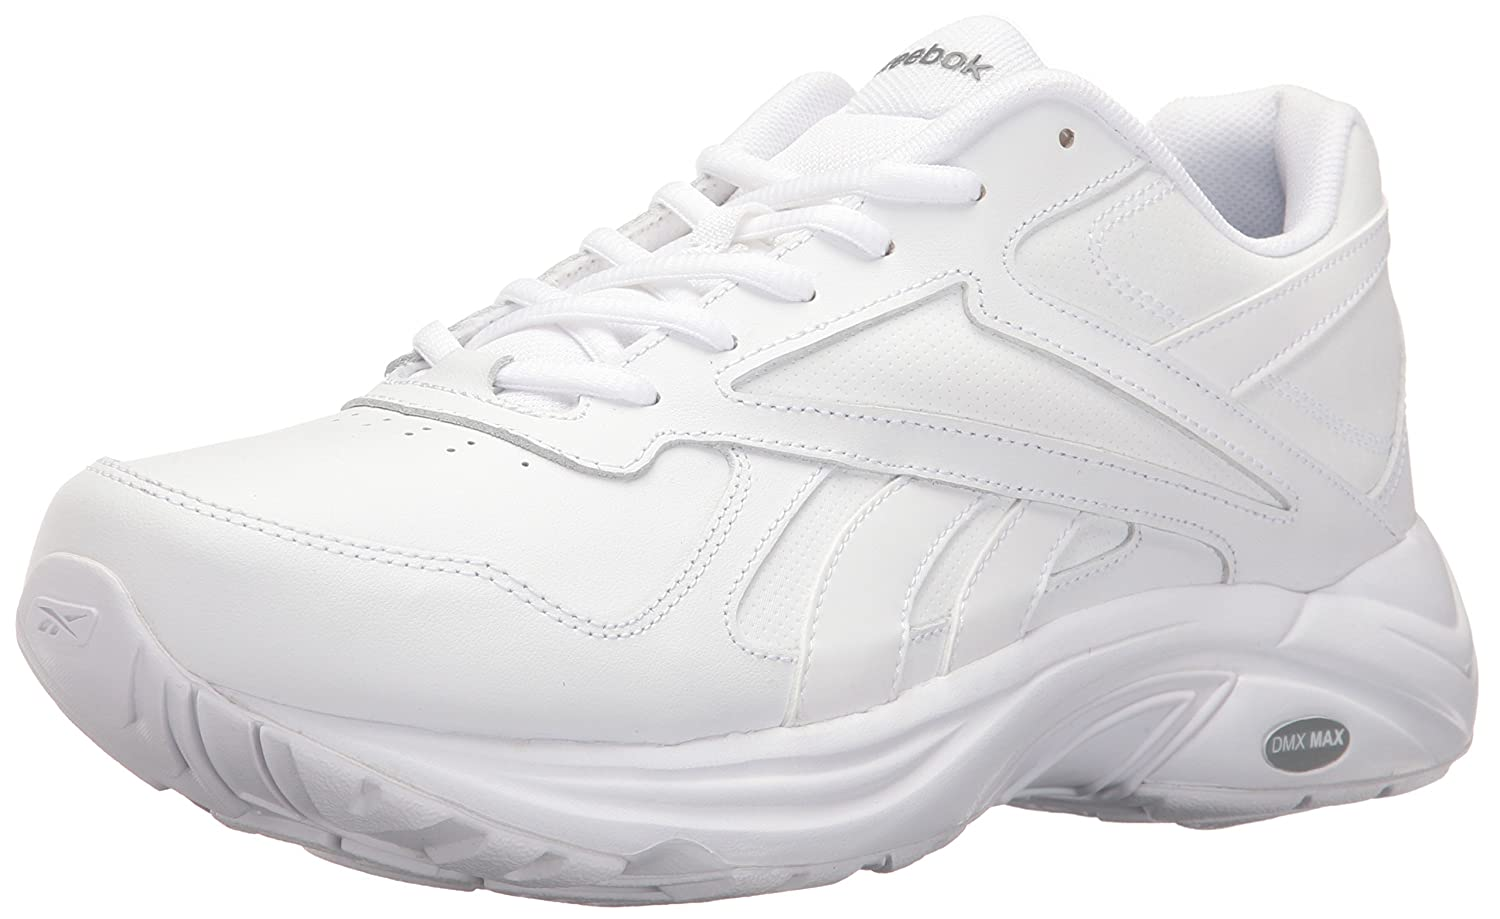 01d47e3a46c0 Reebok Men s Ultra V DMX Max Walking Shoe  Amazon.co.uk  Shoes   Bags